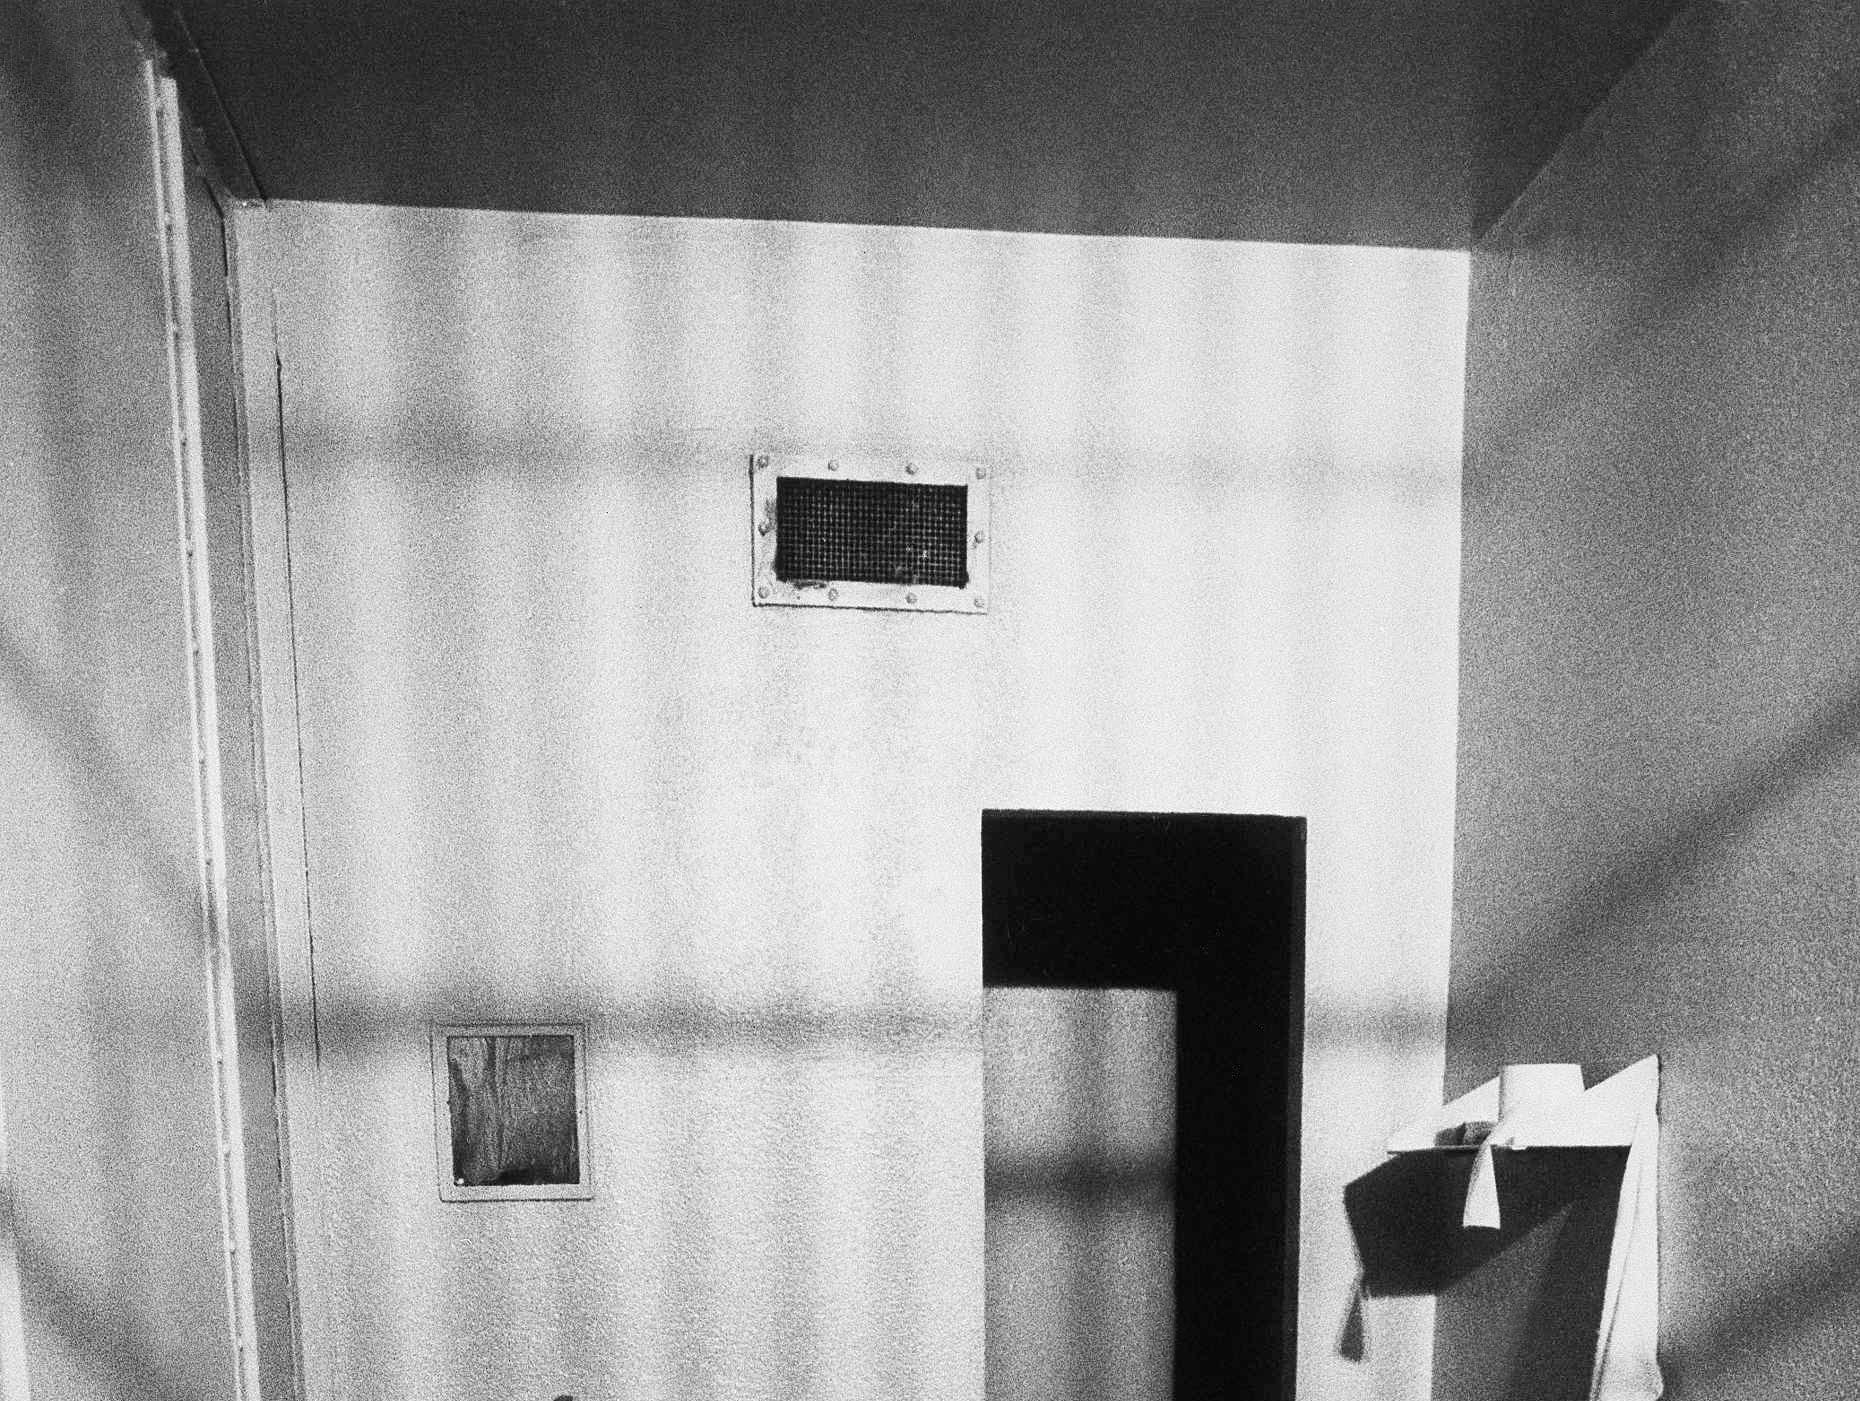 This is the isolation cell in Dade County Jail where accused murderer Theodore Bundy is being held in Miami, shown, June 26, 1979, during his relocated murder trial.